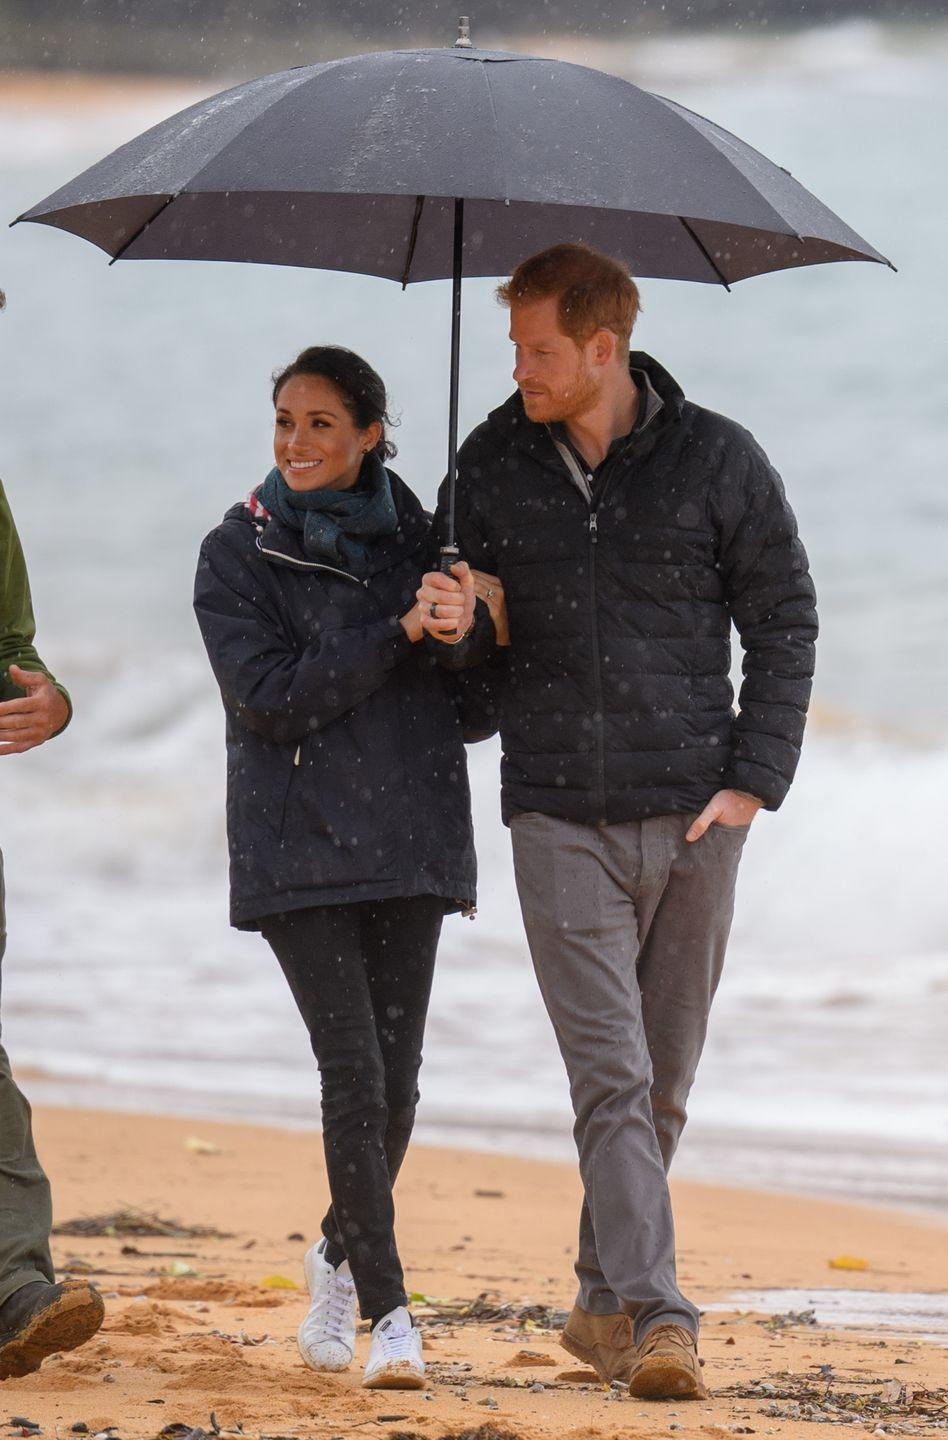 "<p>The Duke and Duchess visited Abel Tasman National Park, where they learned about conservation programs. Both Harry and Meghan bundled up for the stormy weather, with Meghan wearing a coat and scarf over with <a href=""https://outlanddenim.ca/products/harriet-in-black-1?variant=12431424815201"" rel=""nofollow noopener"" target=""_blank"" data-ylk=""slk:Outland Denim's Harriet jeans."" class=""link rapid-noclick-resp"">Outland Denim's Harriet jeans.</a> According to <a href=""http://meghansmirror.com/royal-style/royal-tours/royal-tour-australia/meghan-harry-travel-to-abel-tasman-park/"" rel=""nofollow noopener"" target=""_blank"" data-ylk=""slk:Meghan's Mirror,"" class=""link rapid-noclick-resp"">Meghan's Mirror,</a> the Duchess also wore Stella McCartney x Adidas ""Stan Smith"" collaboration sneaker. </p><p><a class=""link rapid-noclick-resp"" href=""https://www.bergdorfgoodman.com/Stella-McCartney-Stan-Smith-Collab-Sneakers/prod140020073/p.prod"" rel=""nofollow noopener"" target=""_blank"" data-ylk=""slk:SHOP NOW"">SHOP NOW</a> <em>Stella McCartney x Adidas Stan Smith sneaker, $325</em></p>"